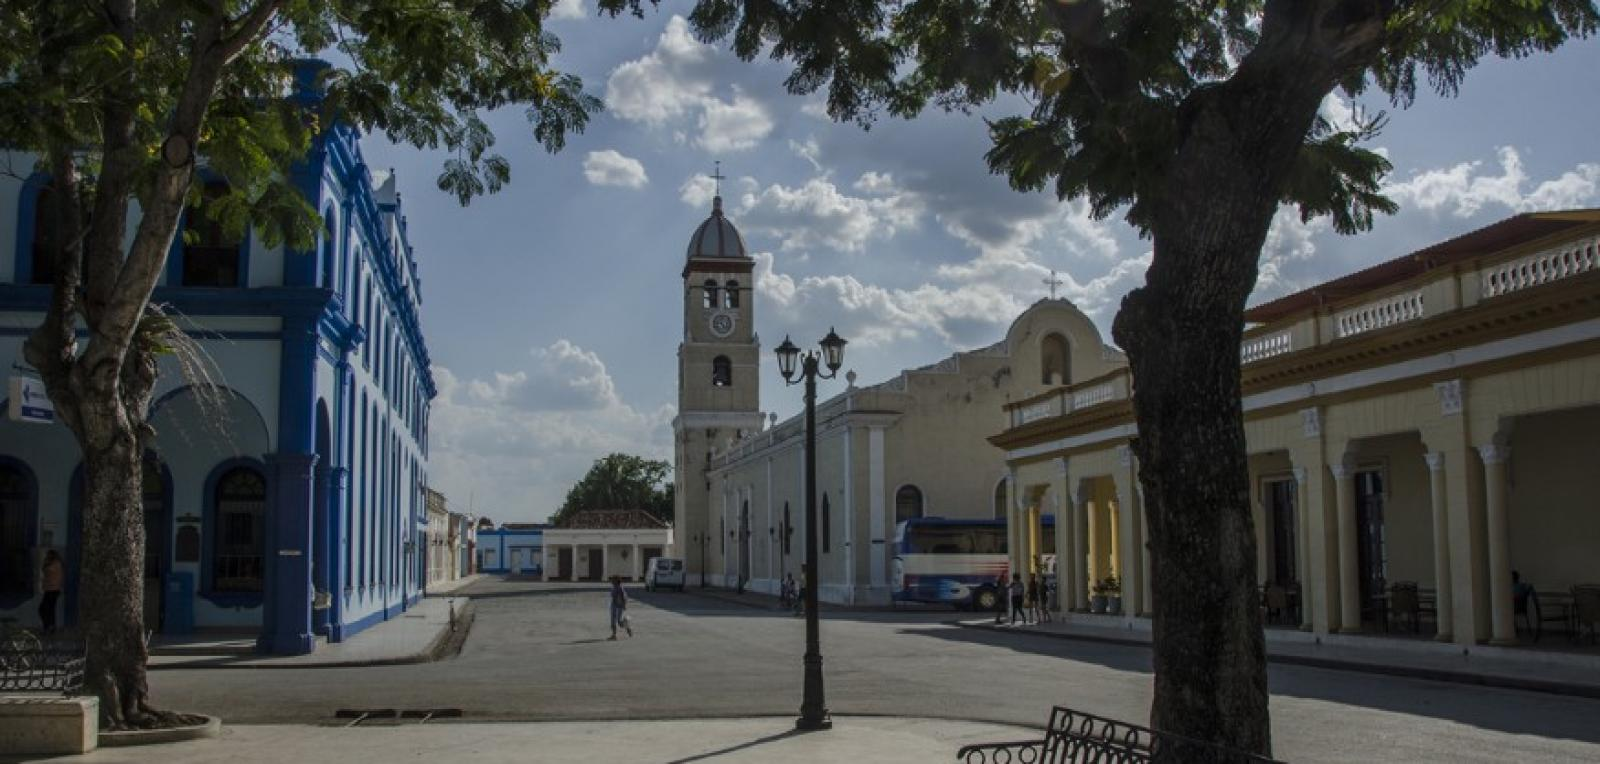 San Salvador de Bayamo Church, witness to great events